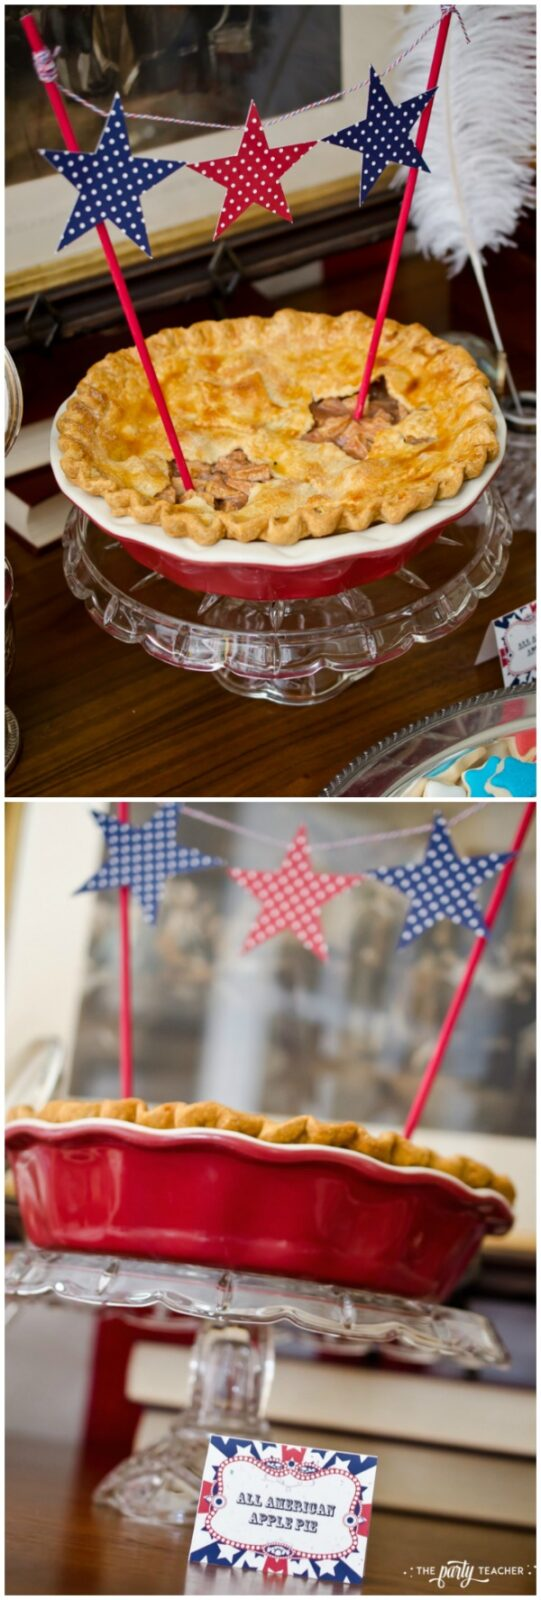 Grandma's apple pie recipe by The Party Teacher - so easy to make and perfect for your 4th of July party